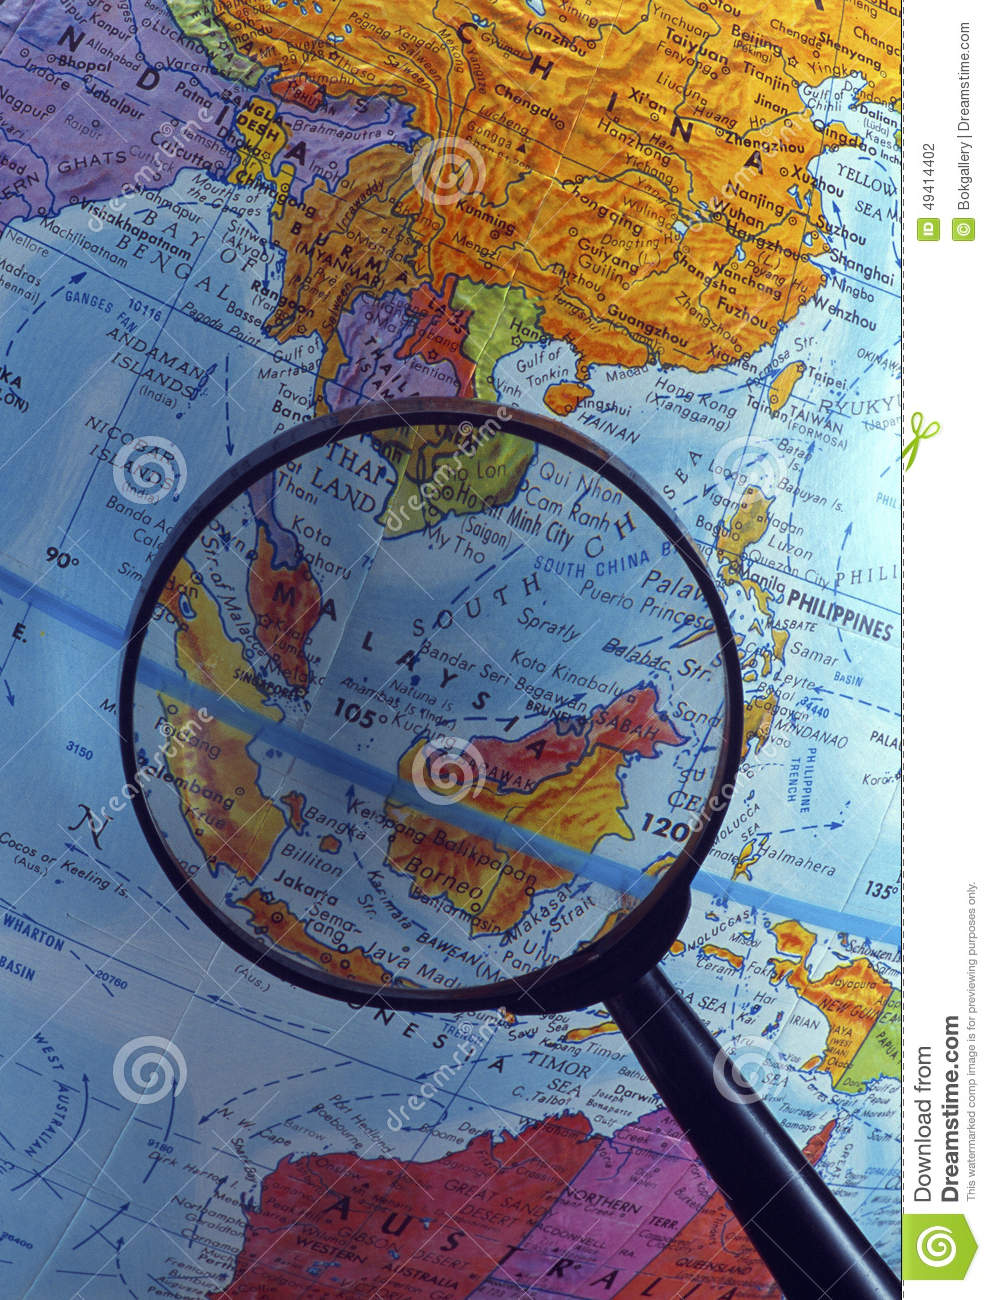 Looking at globe using magnifying glass (South East Asian Region)